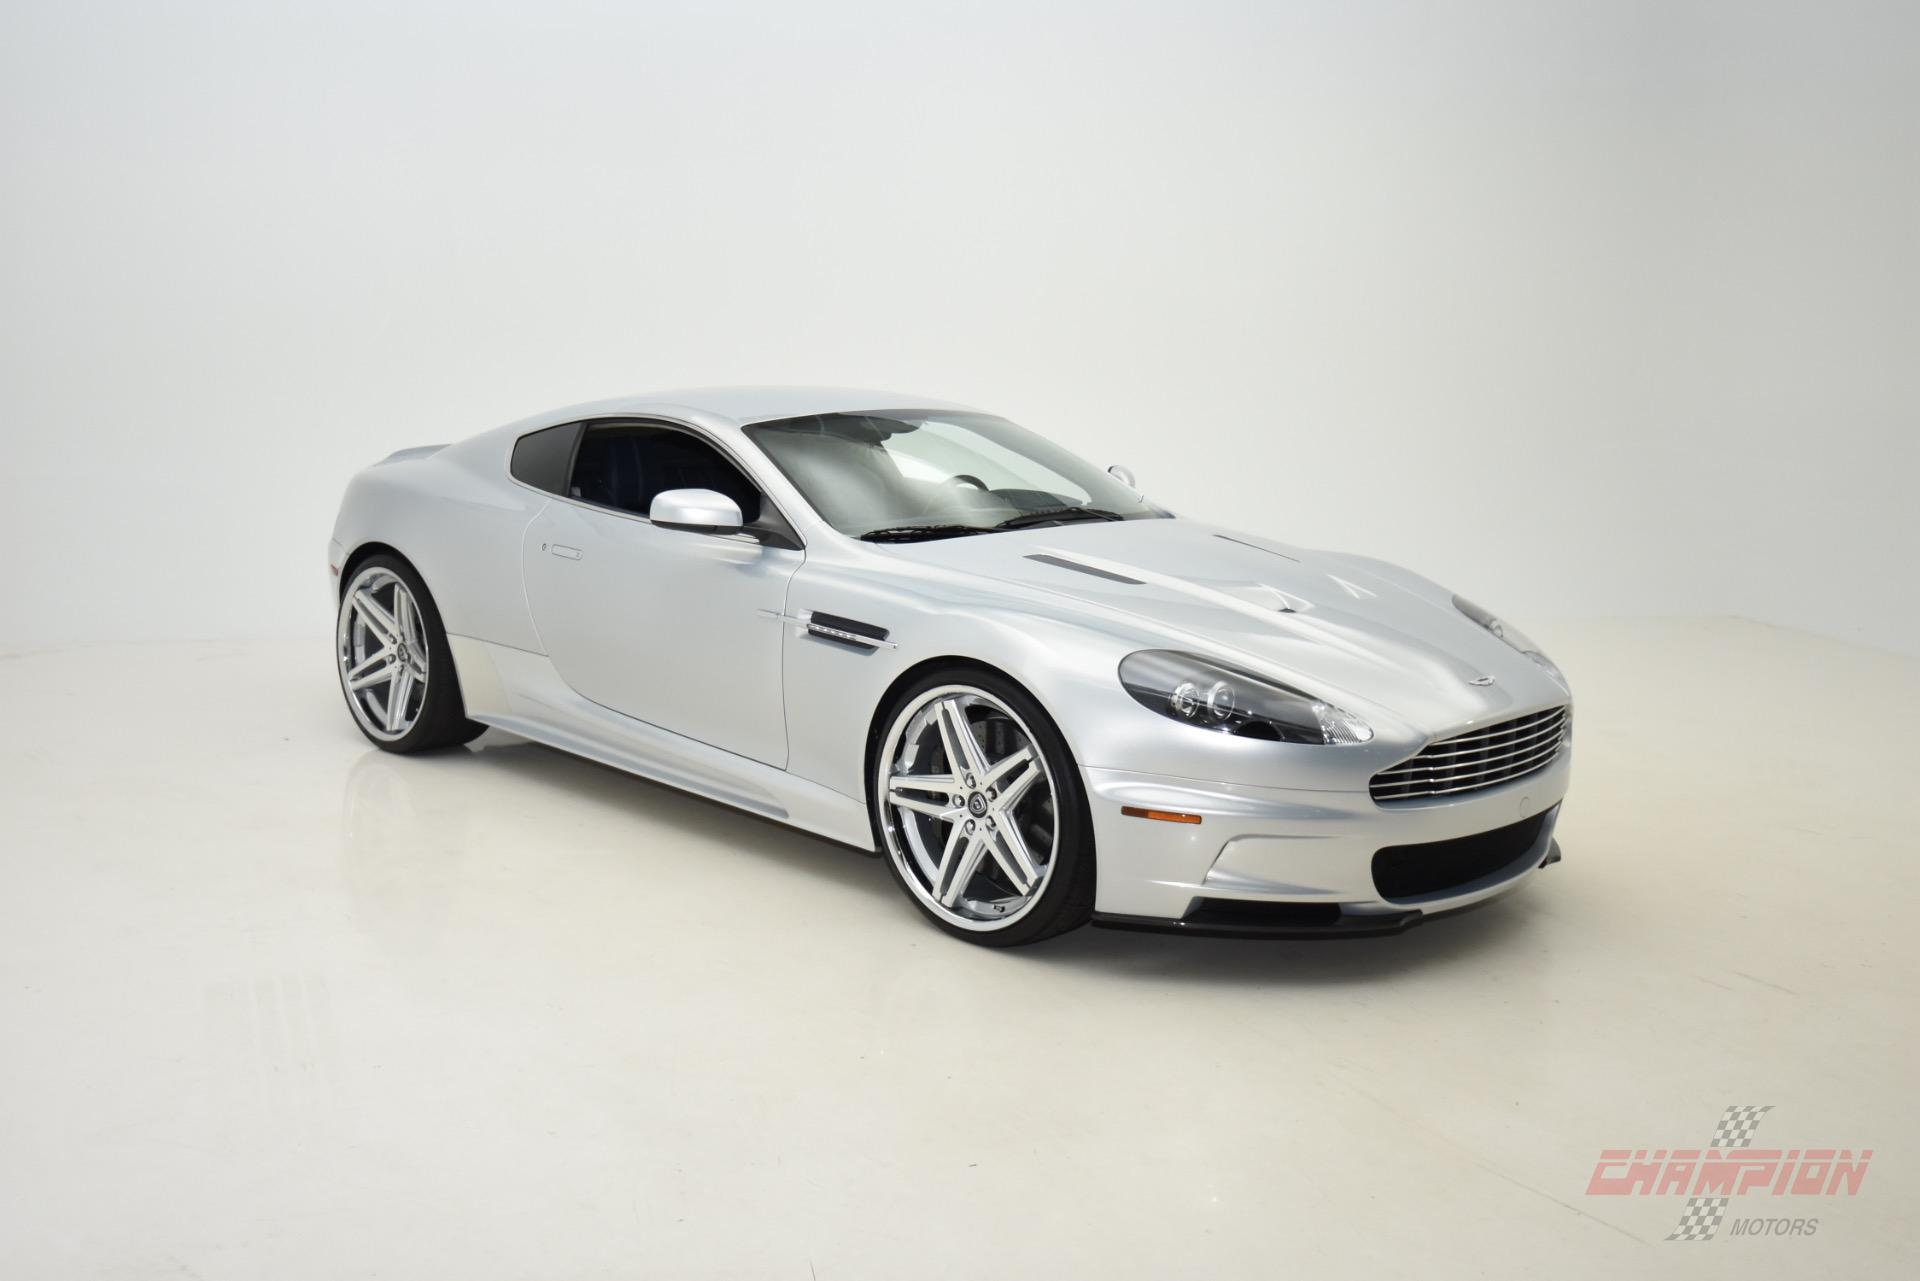 2009 aston martin dbs - exotic and classic car dealership